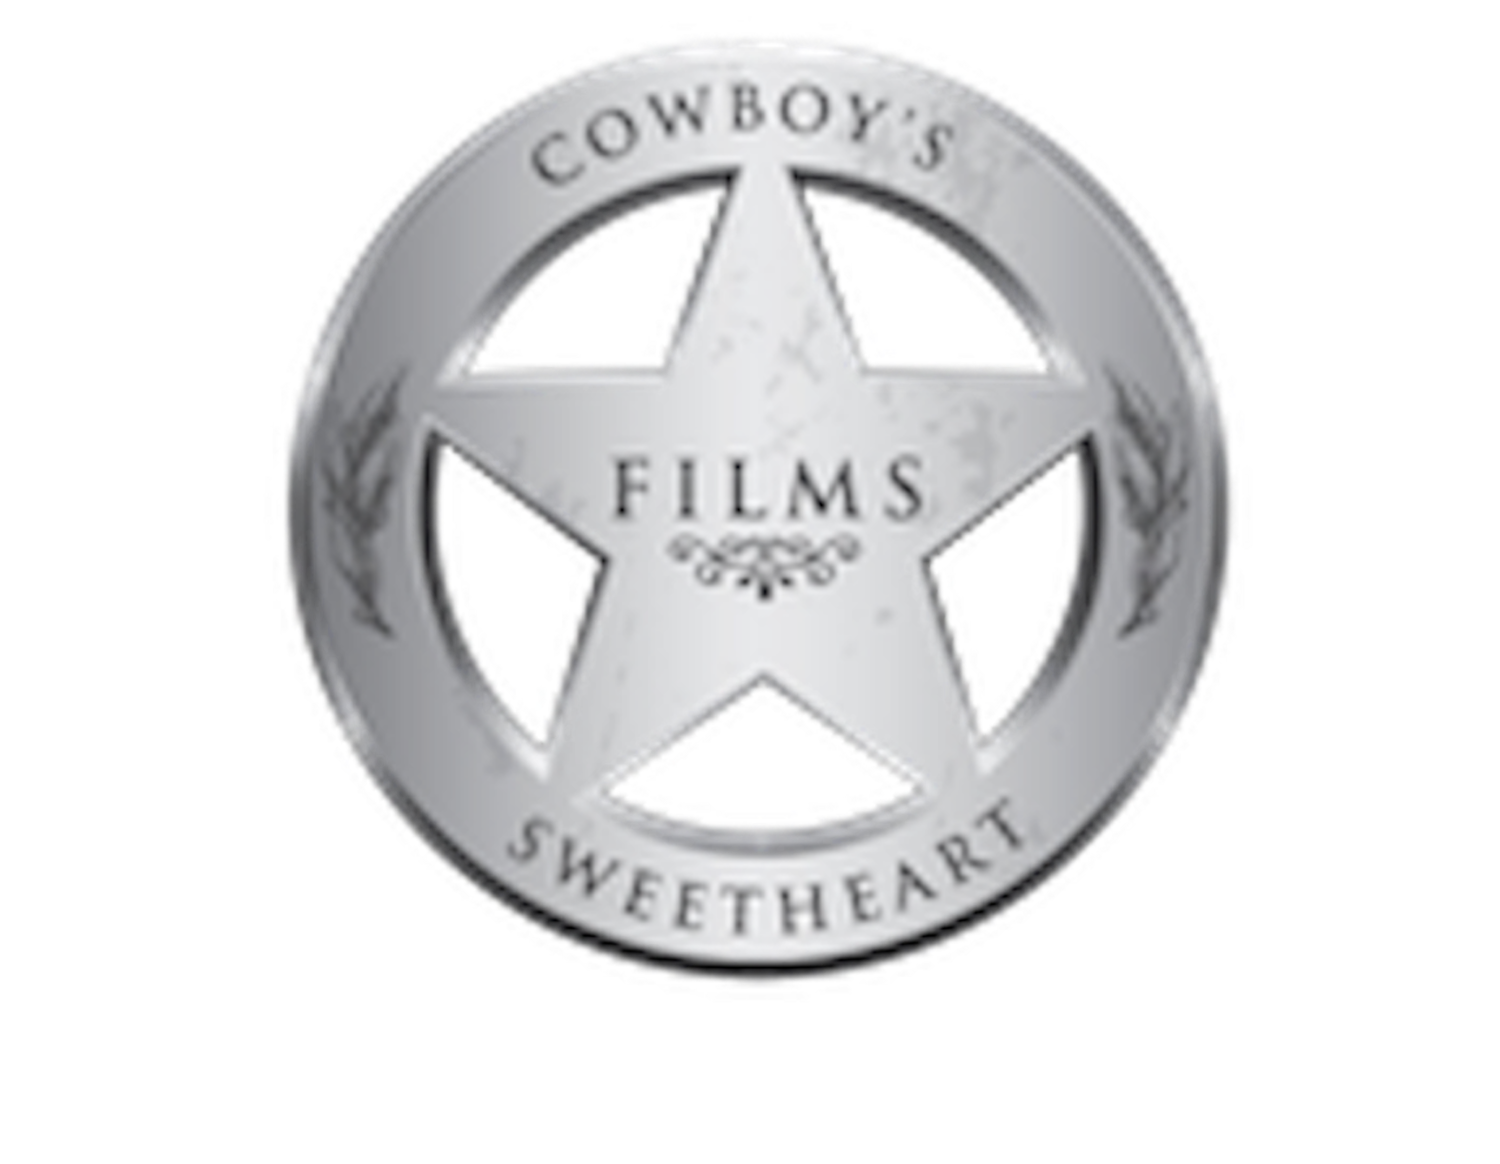 Cowboy's Sweetheart Films